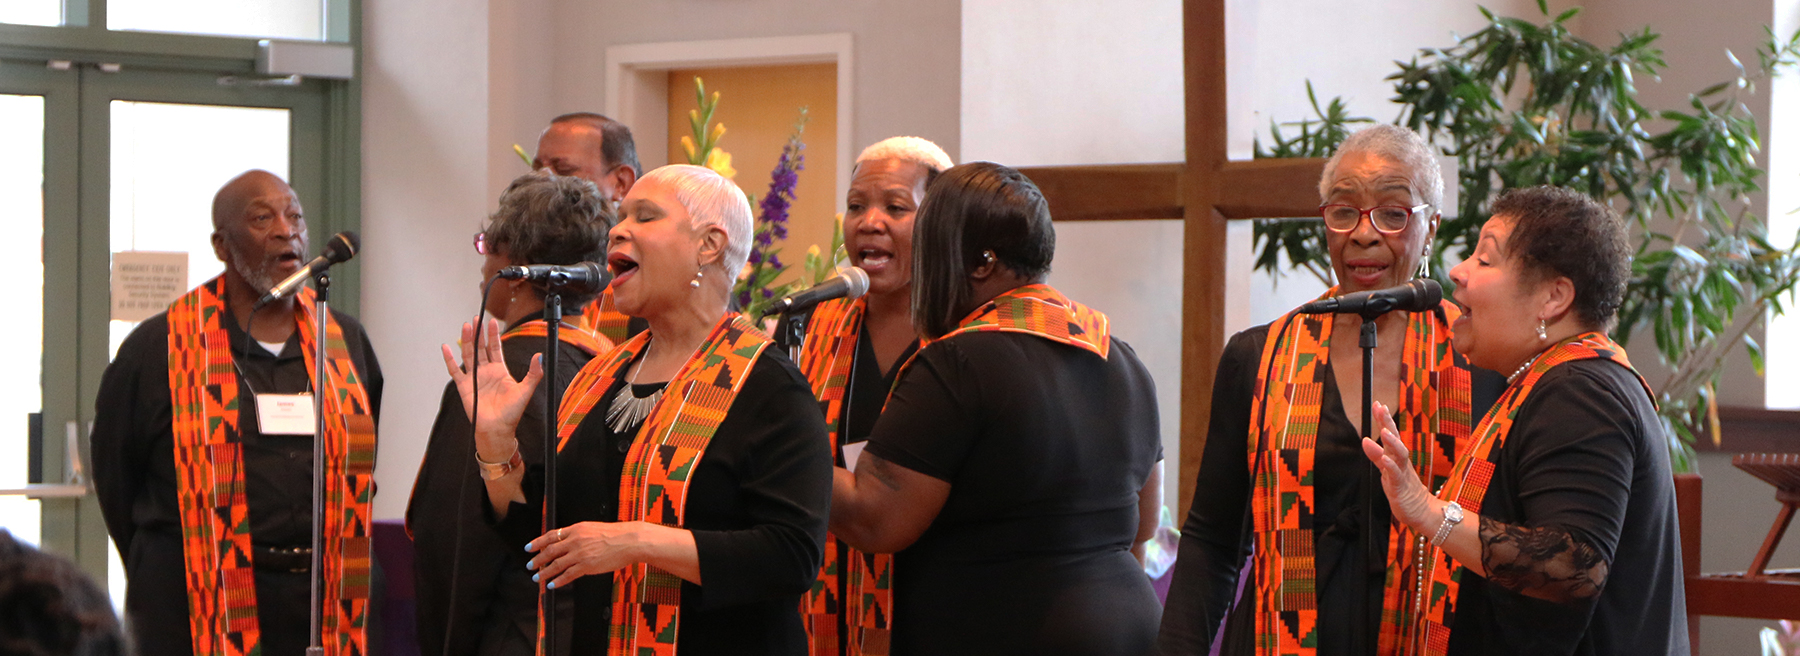 The Peace Choir sang several of Robina Winbush's favorite songs during worship at the PC(USA) Chapel. Photo by Angie Stevens.